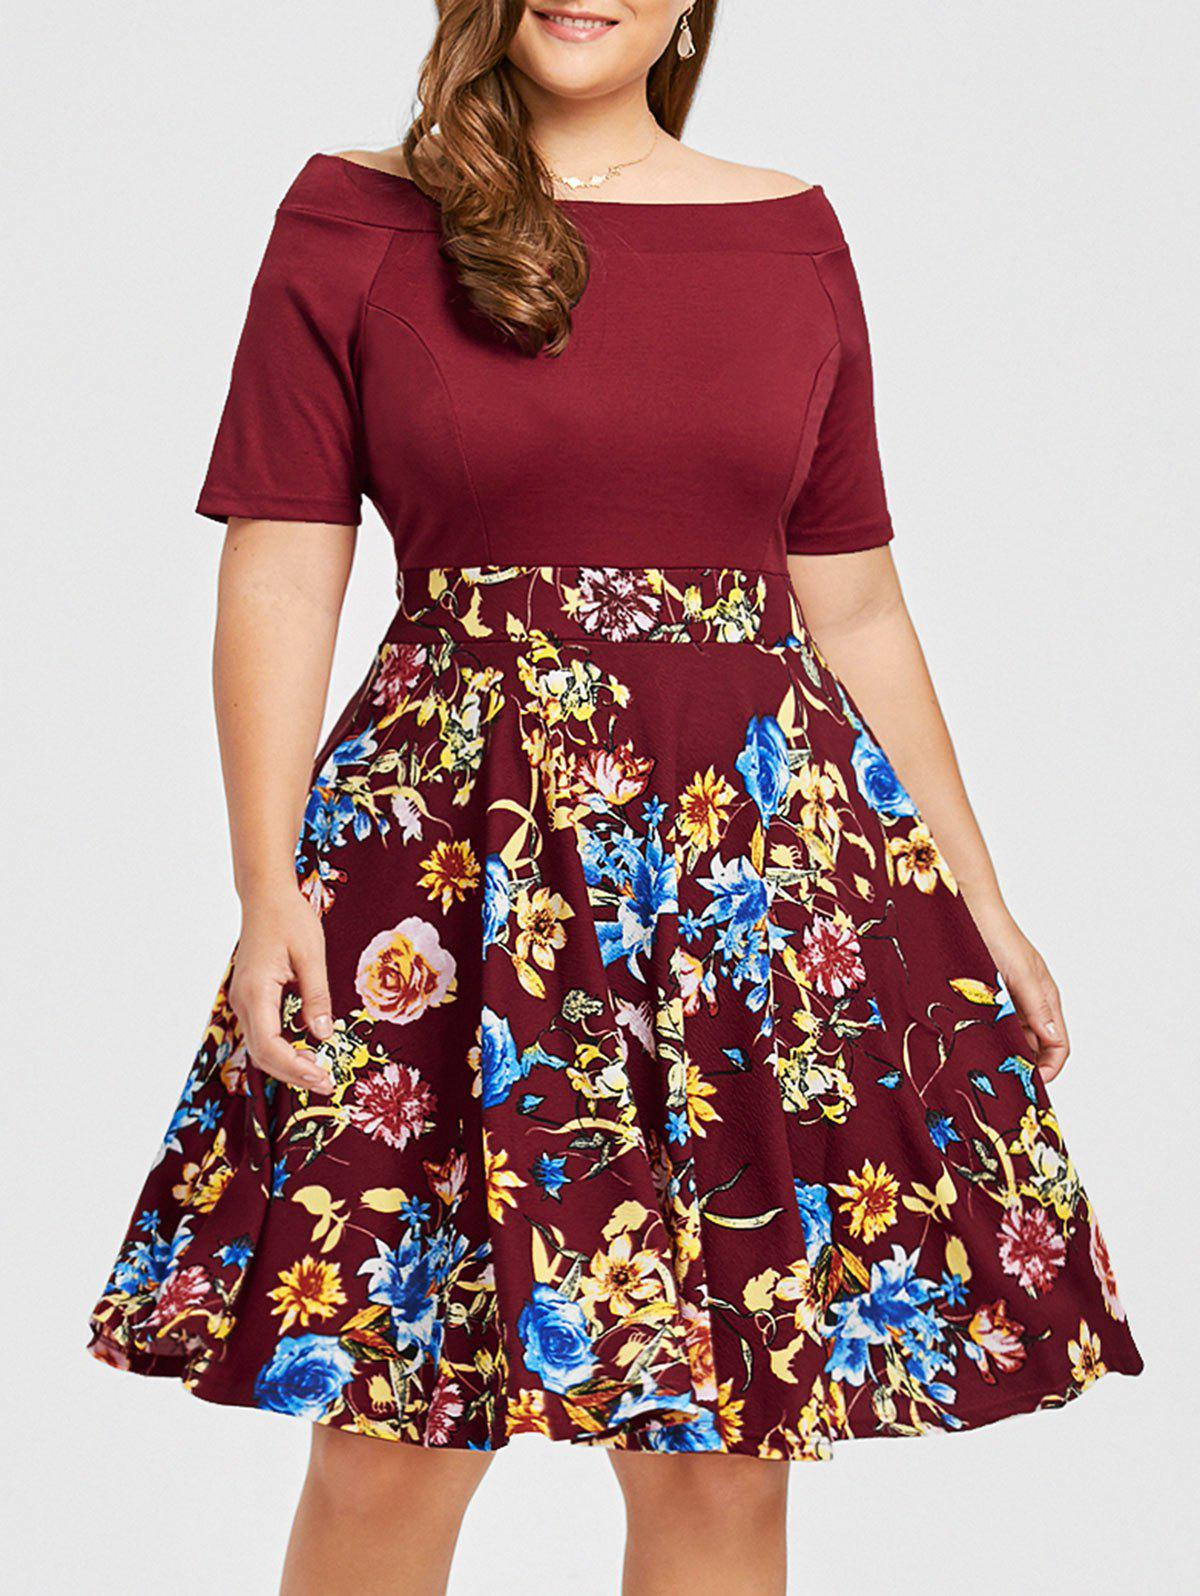 Plus Size Floral Print Boat Neck DressWOMEN<br><br>Size: 4XL; Color: WINE RED; Style: Casual; Material: Cotton,Polyester; Silhouette: A-Line; Dresses Length: Knee-Length; Neckline: Boat Neck; Sleeve Length: Short Sleeves; Pattern Type: Floral; With Belt: No; Season: Fall,Spring,Summer; Weight: 0.4750kg; Package Contents: 1 x Dress;